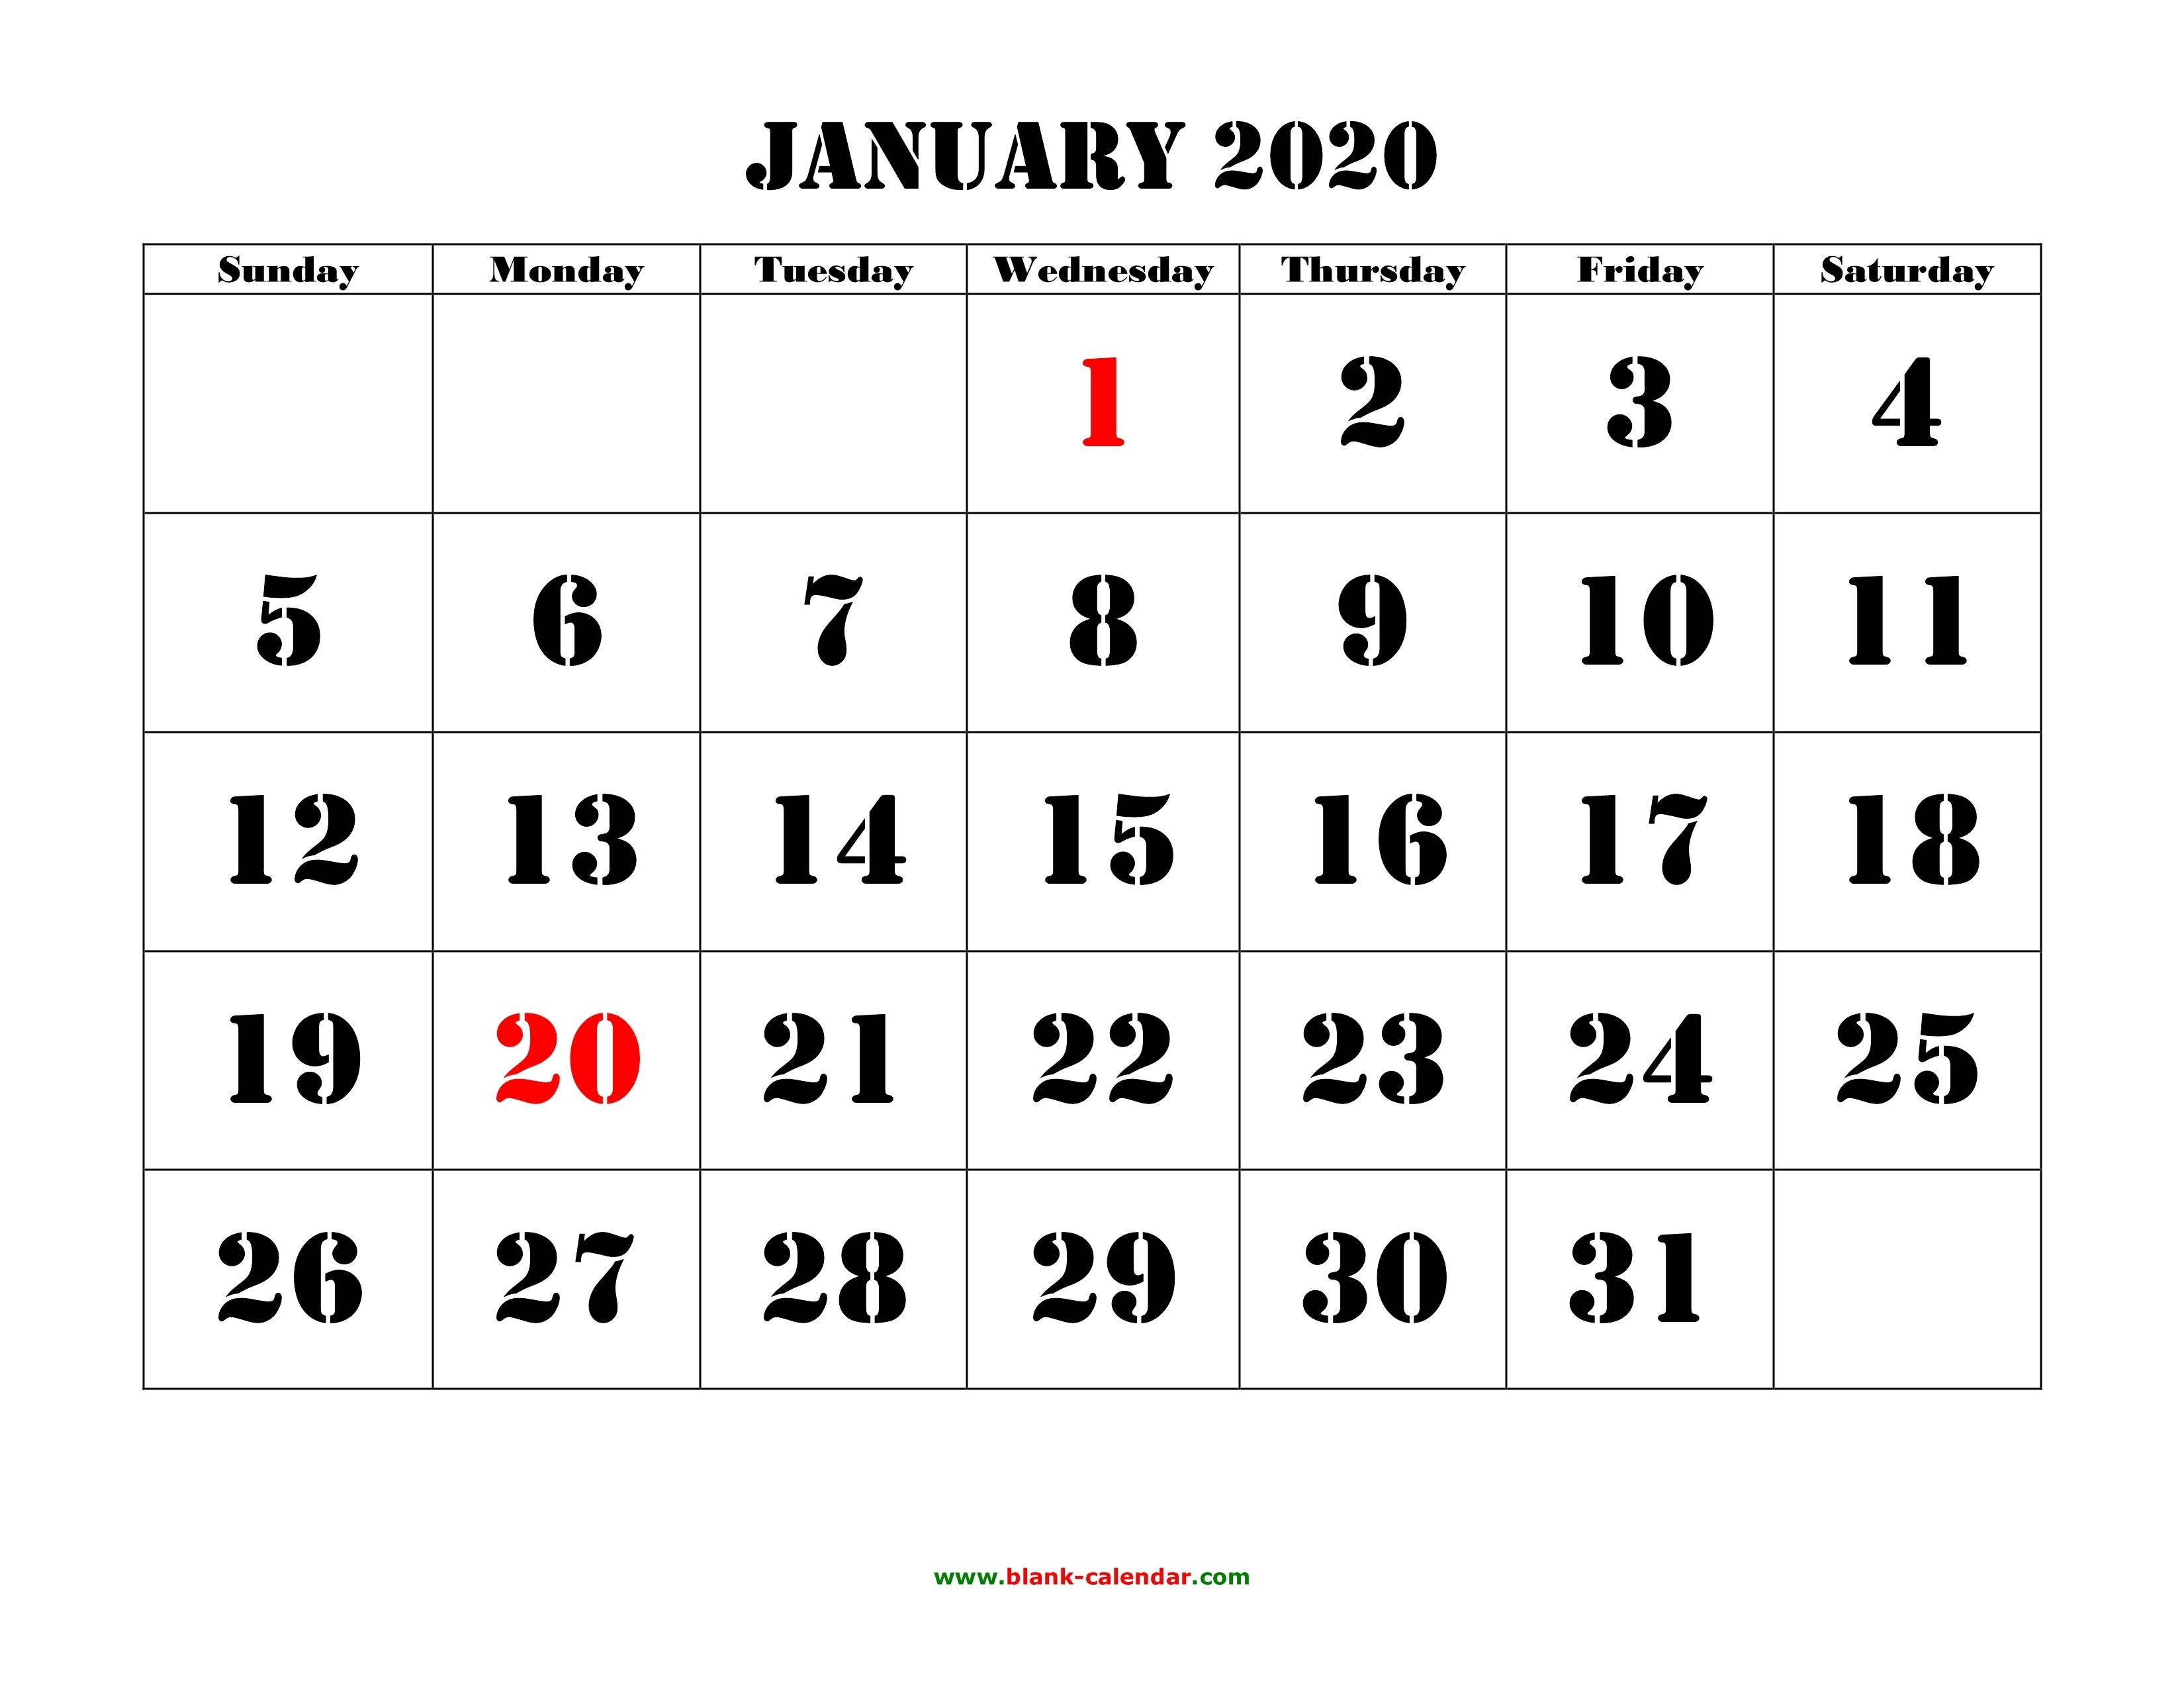 Printable Calendar 2020   Free Download Yearly Calendar-Printable 2 Page Monthly Calendar 2020 Free